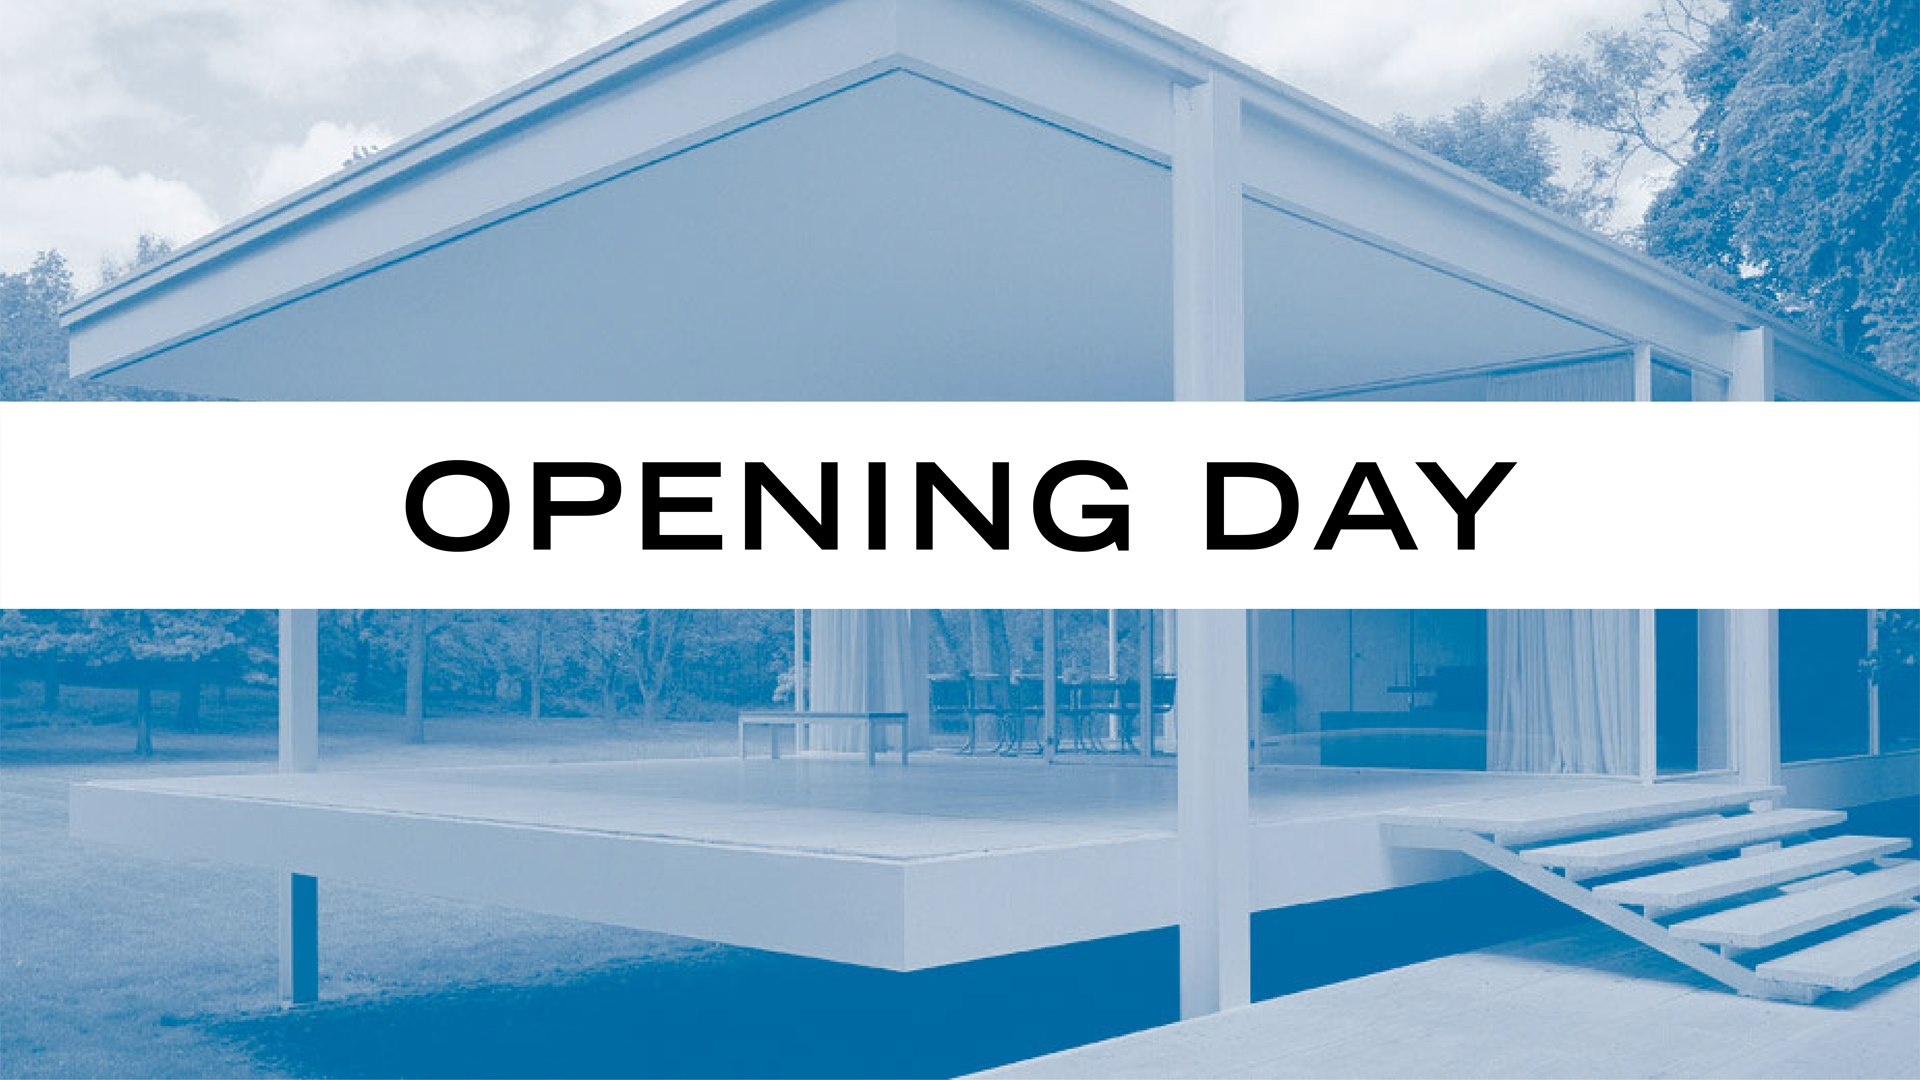 Opening Day at Farnsworth House